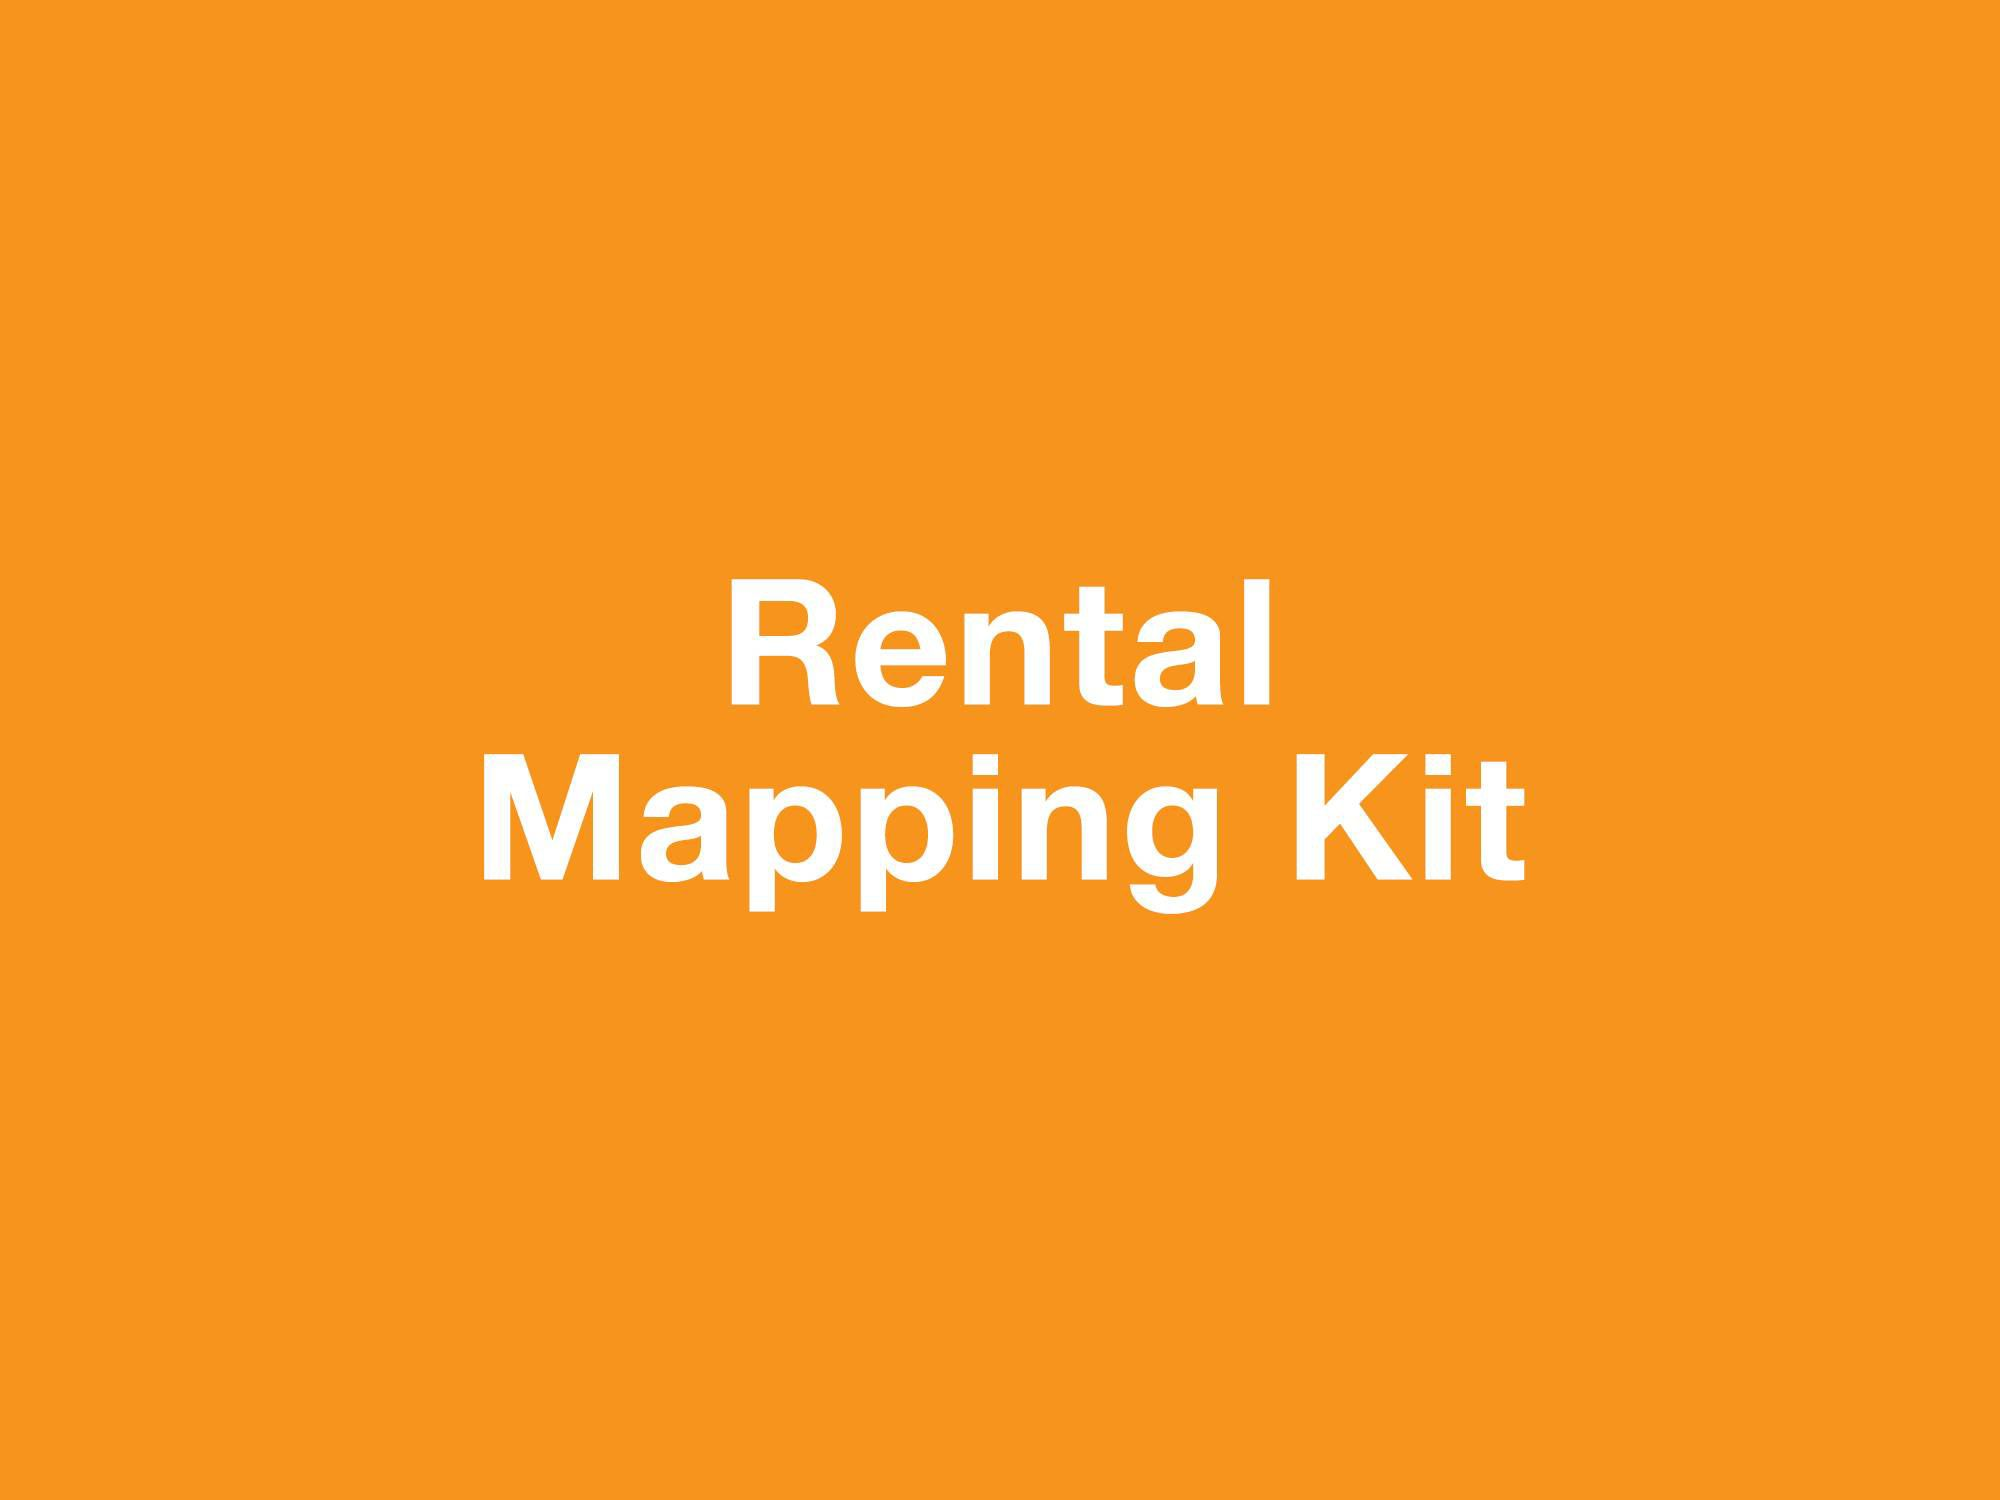 rental_mapping_kit-header-US.jpg